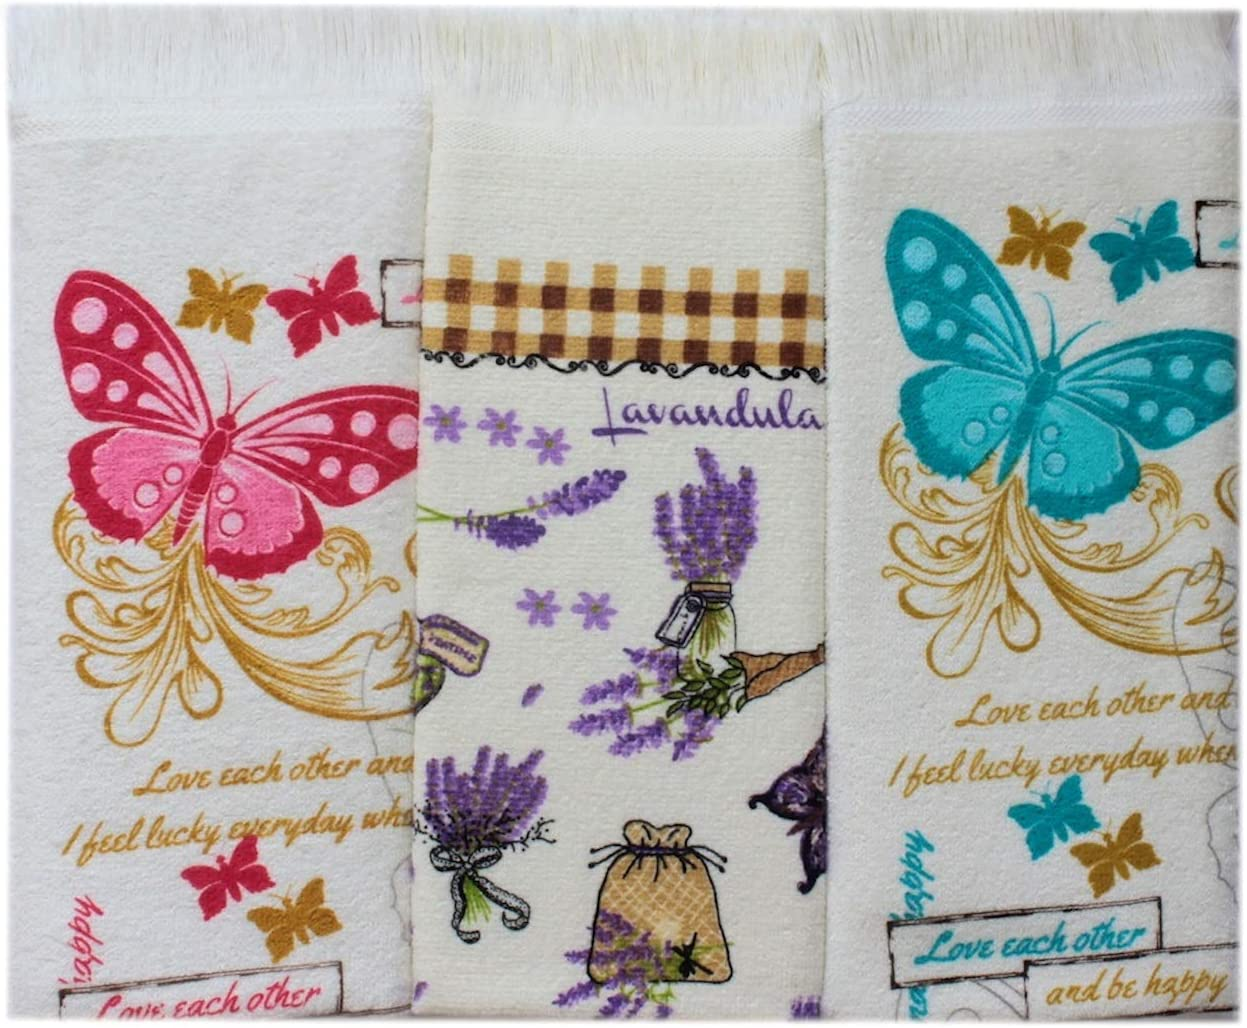 Amazon Com Znb S Spring Home Printed Soft Kitchen Dish Towels Size 16x24 Inches Set Of 3 100 Cotton Great Gift Choice Multi Purpose Eco Friendly Absorbent Decorative Tea Towels Butterflies Lavender 16x24 Home Kitchen